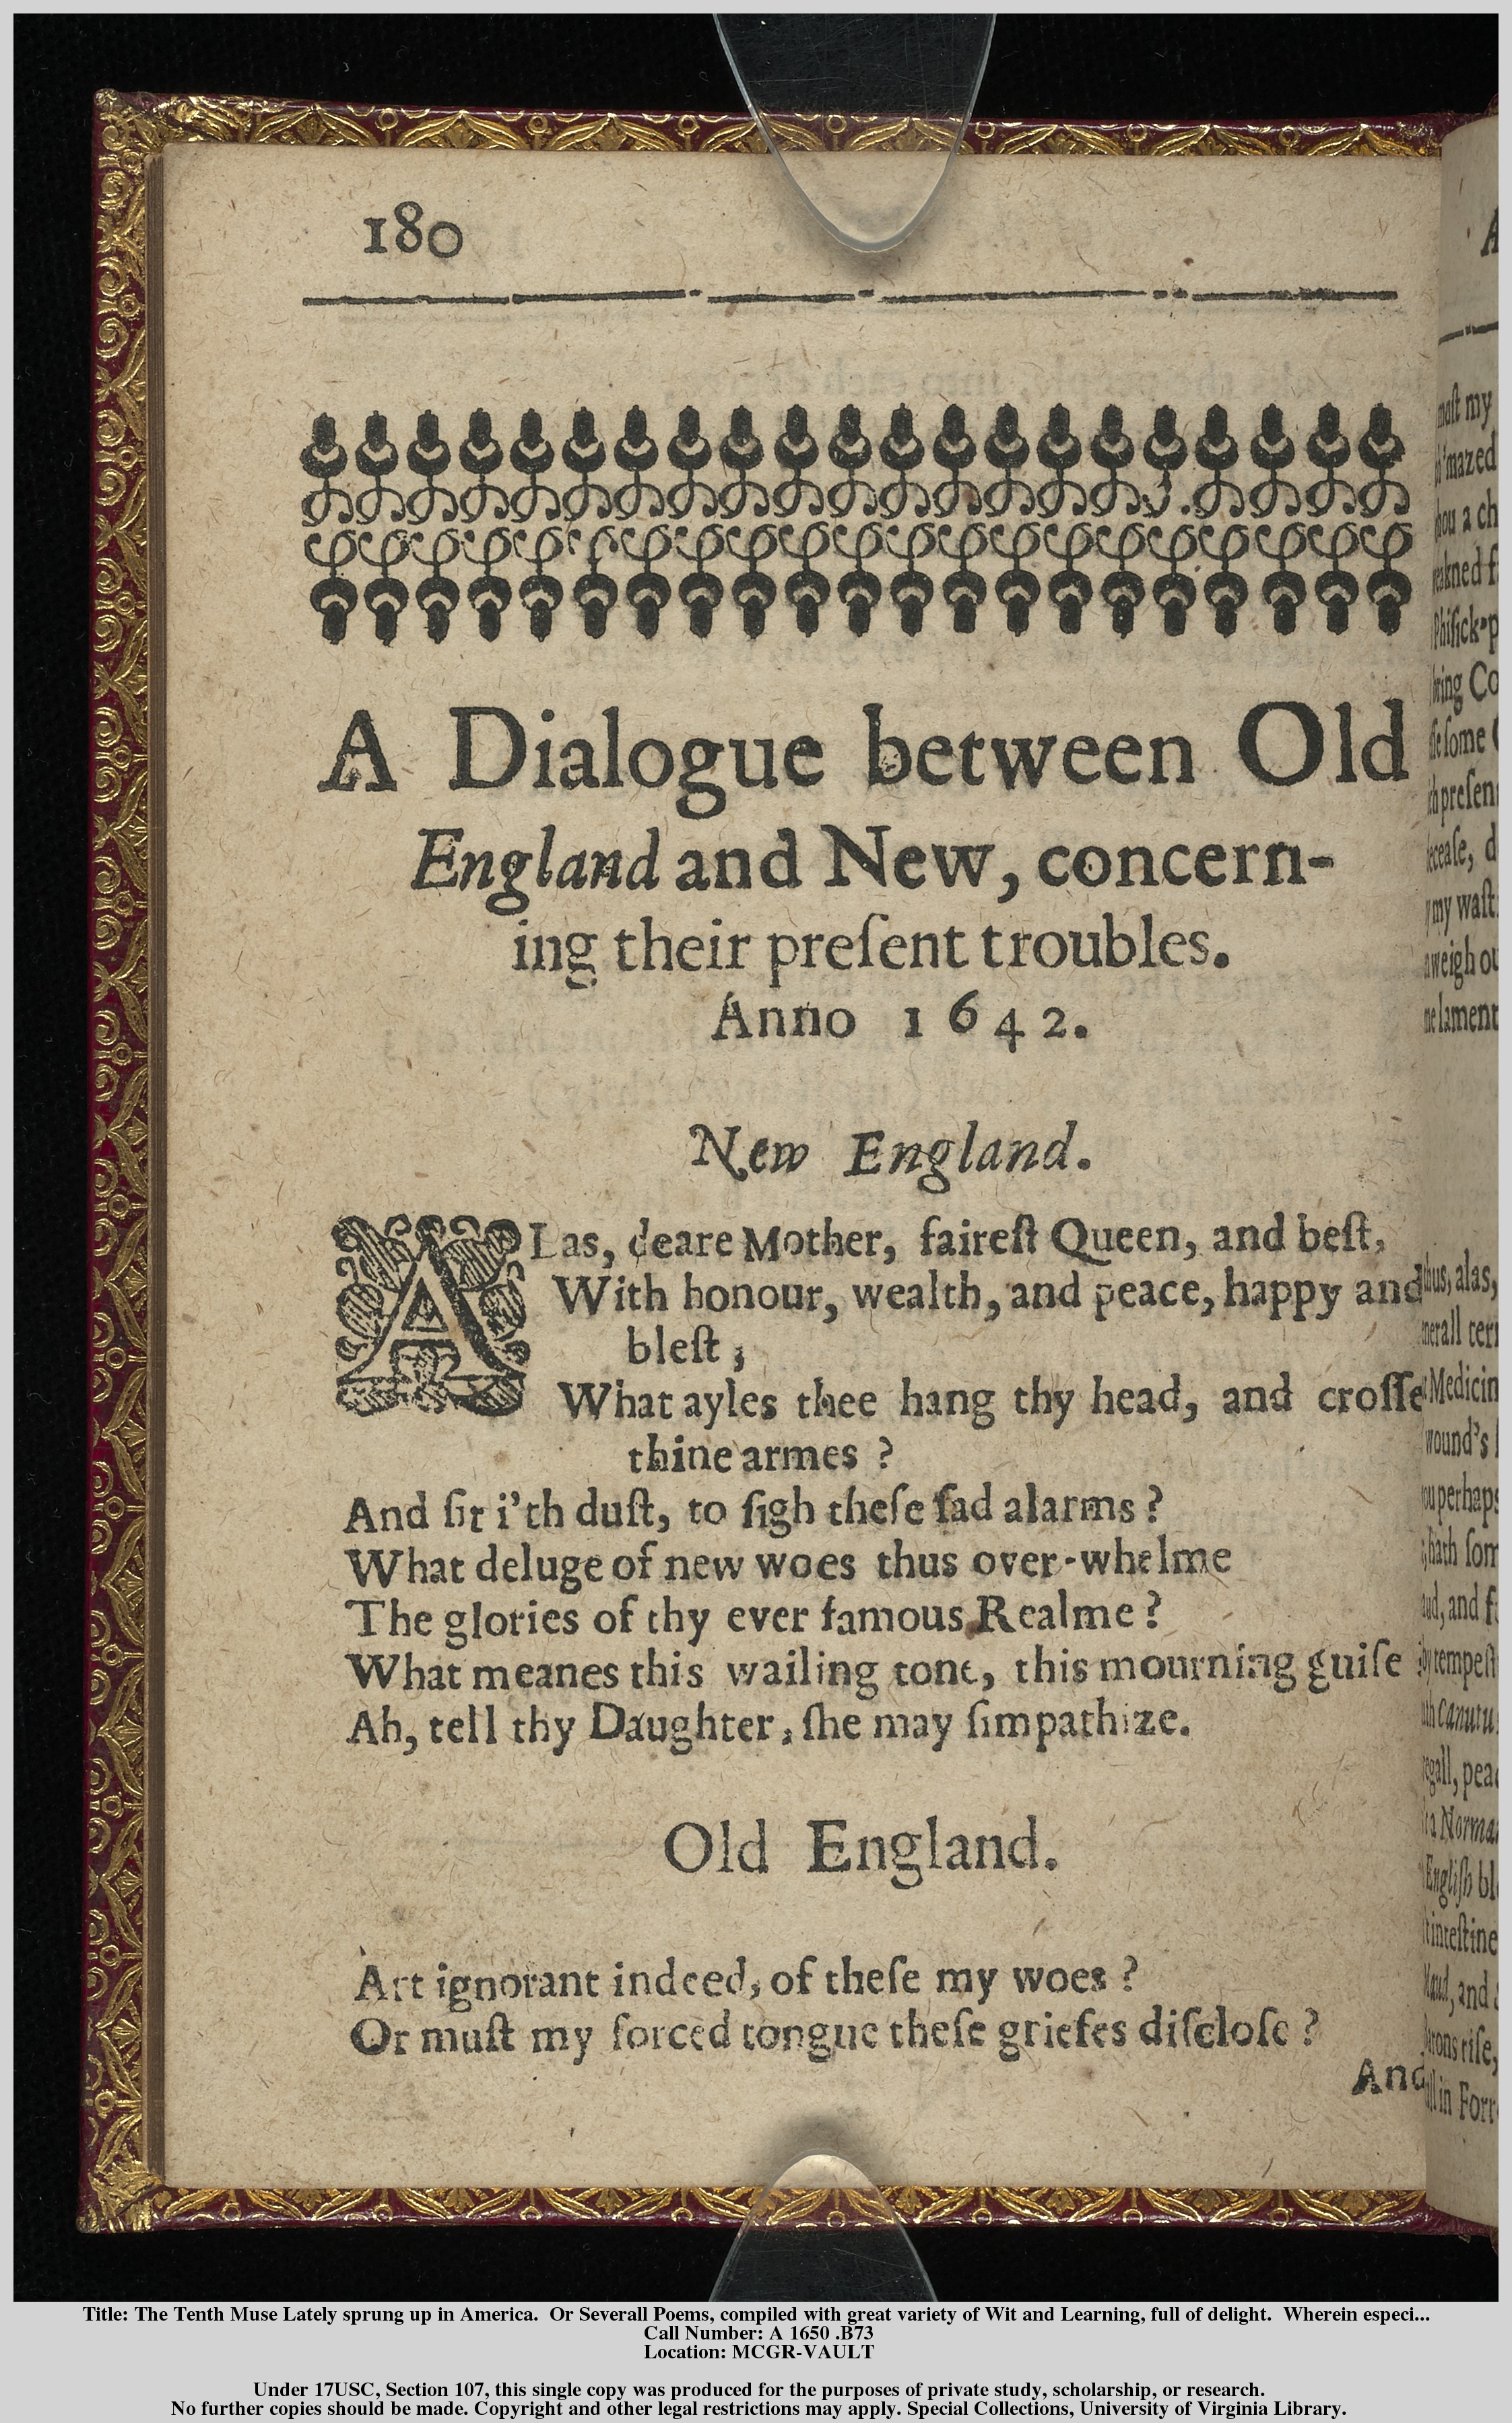 a literary analysis of the tenth muse lately sprung up in america by anne bradstreet